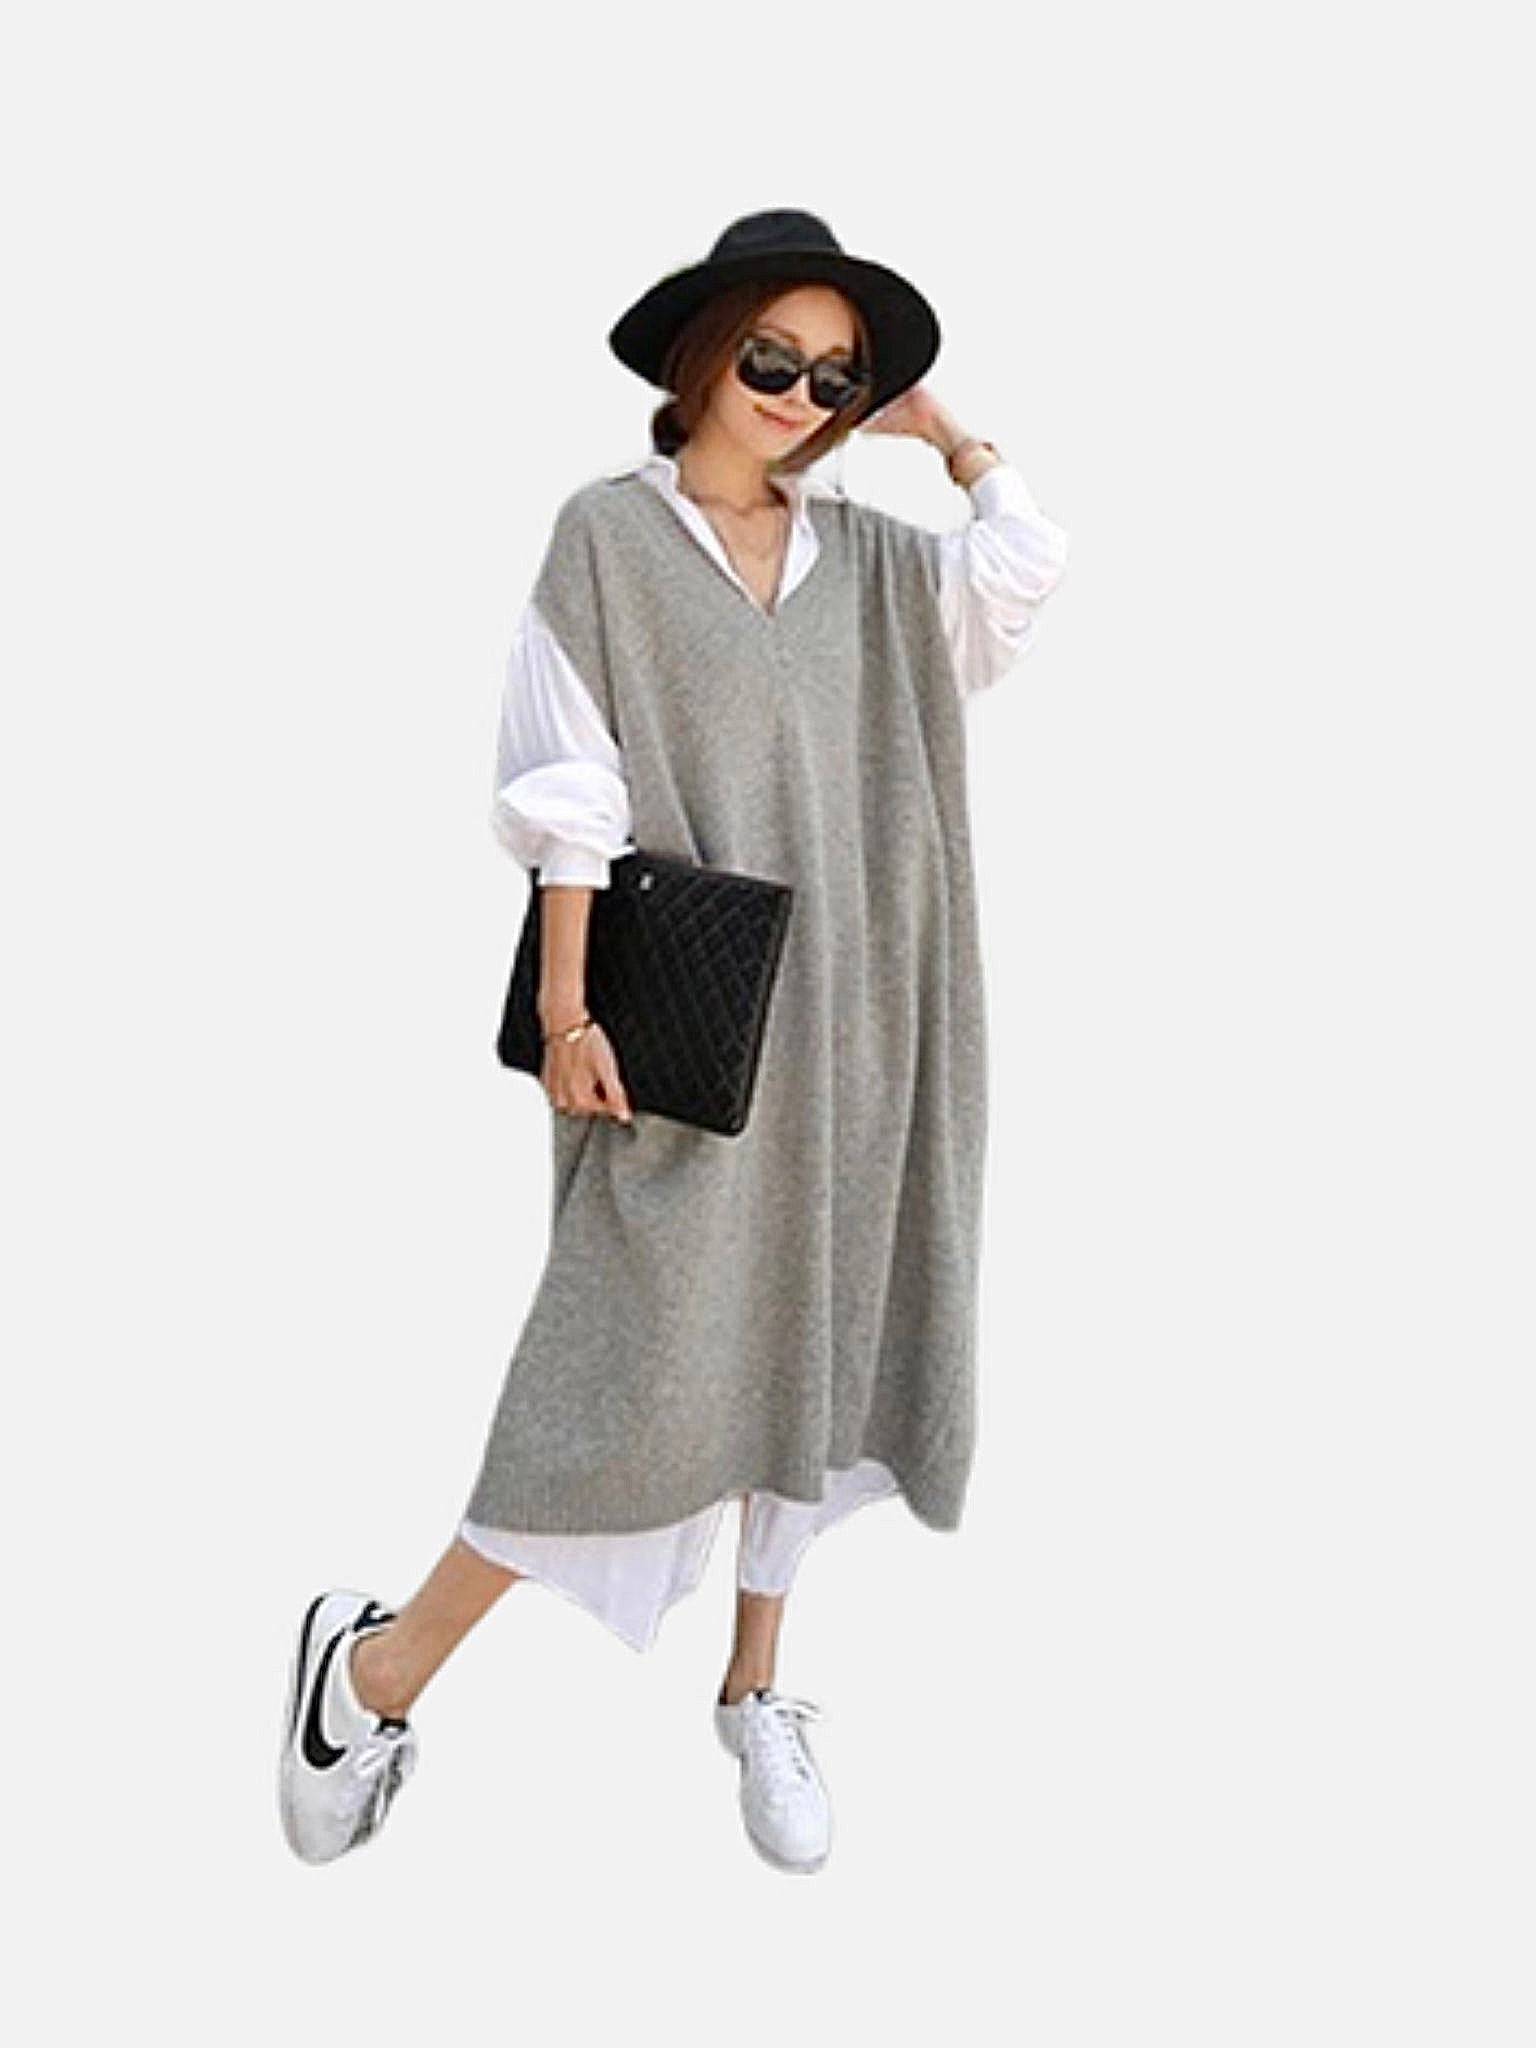 Sleeveless Knit Sweater Dress       Casual oversize straight thick gray / grey knitted long v-neck vest dresses Trend